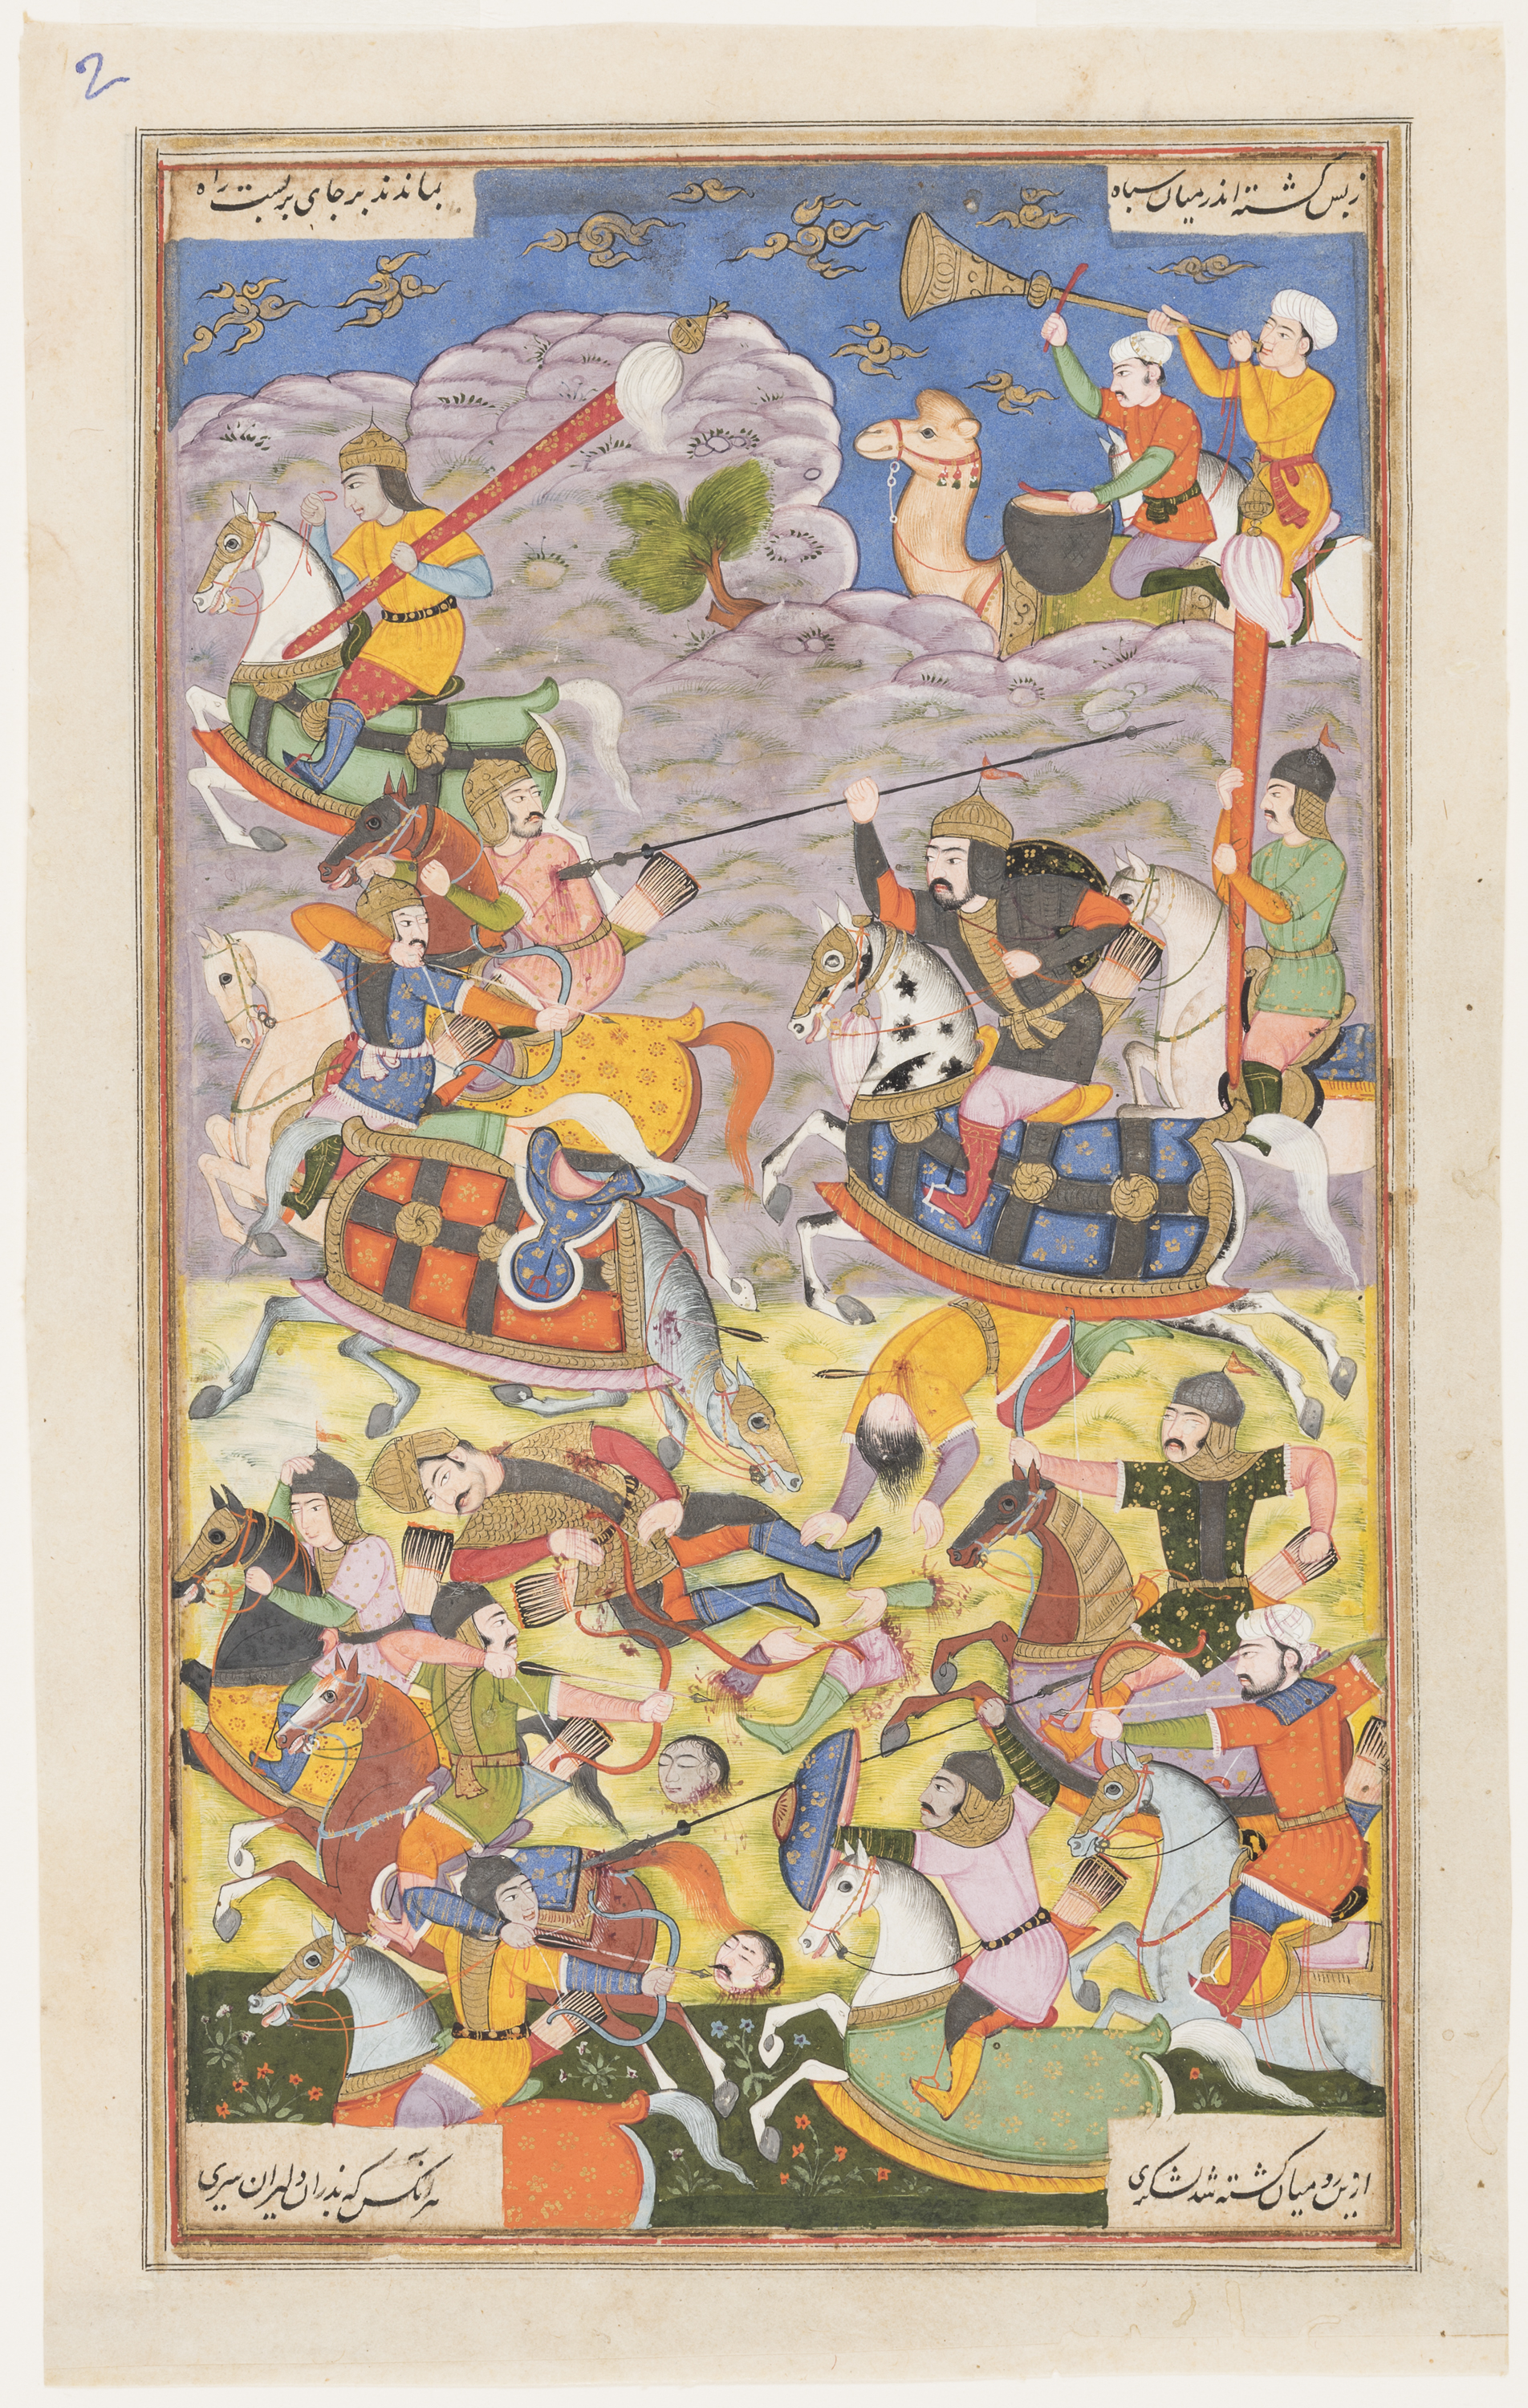 Northern India, Khusrau II Parviz and Bahram Chobin: The second battle. Folio from a Shahnama (Book of Kings), 1608. Opaque watercolor on paper. Edwin Binney 3rd Collection.